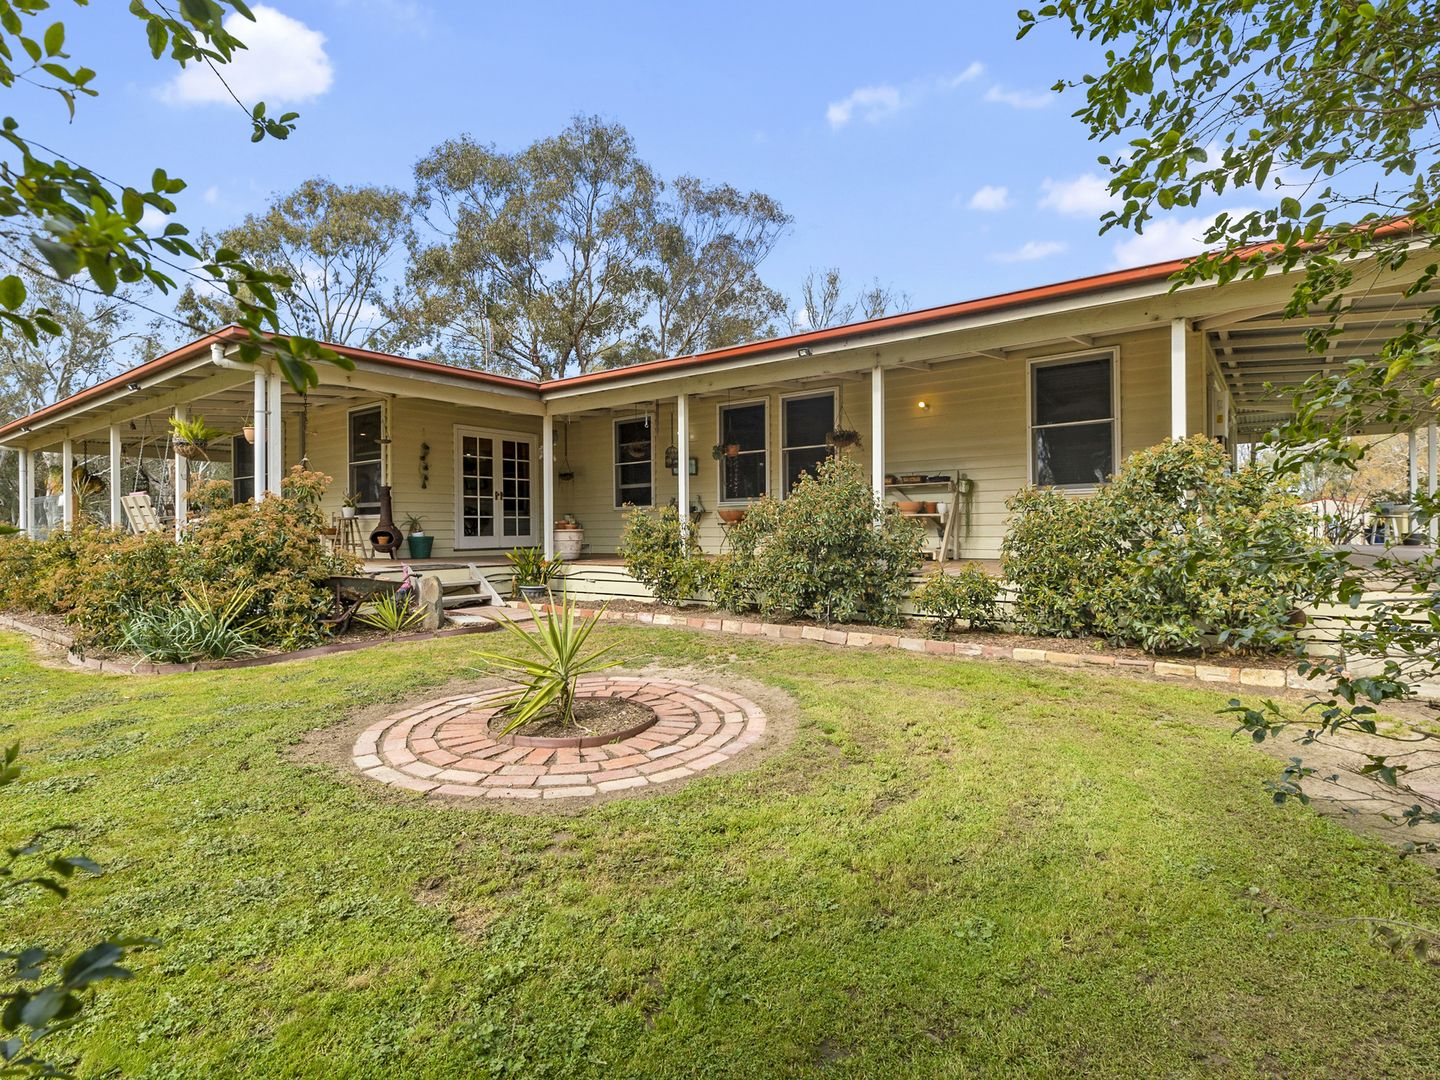 380 O'connors Rd, Mangalore VIC 3663, Image 0